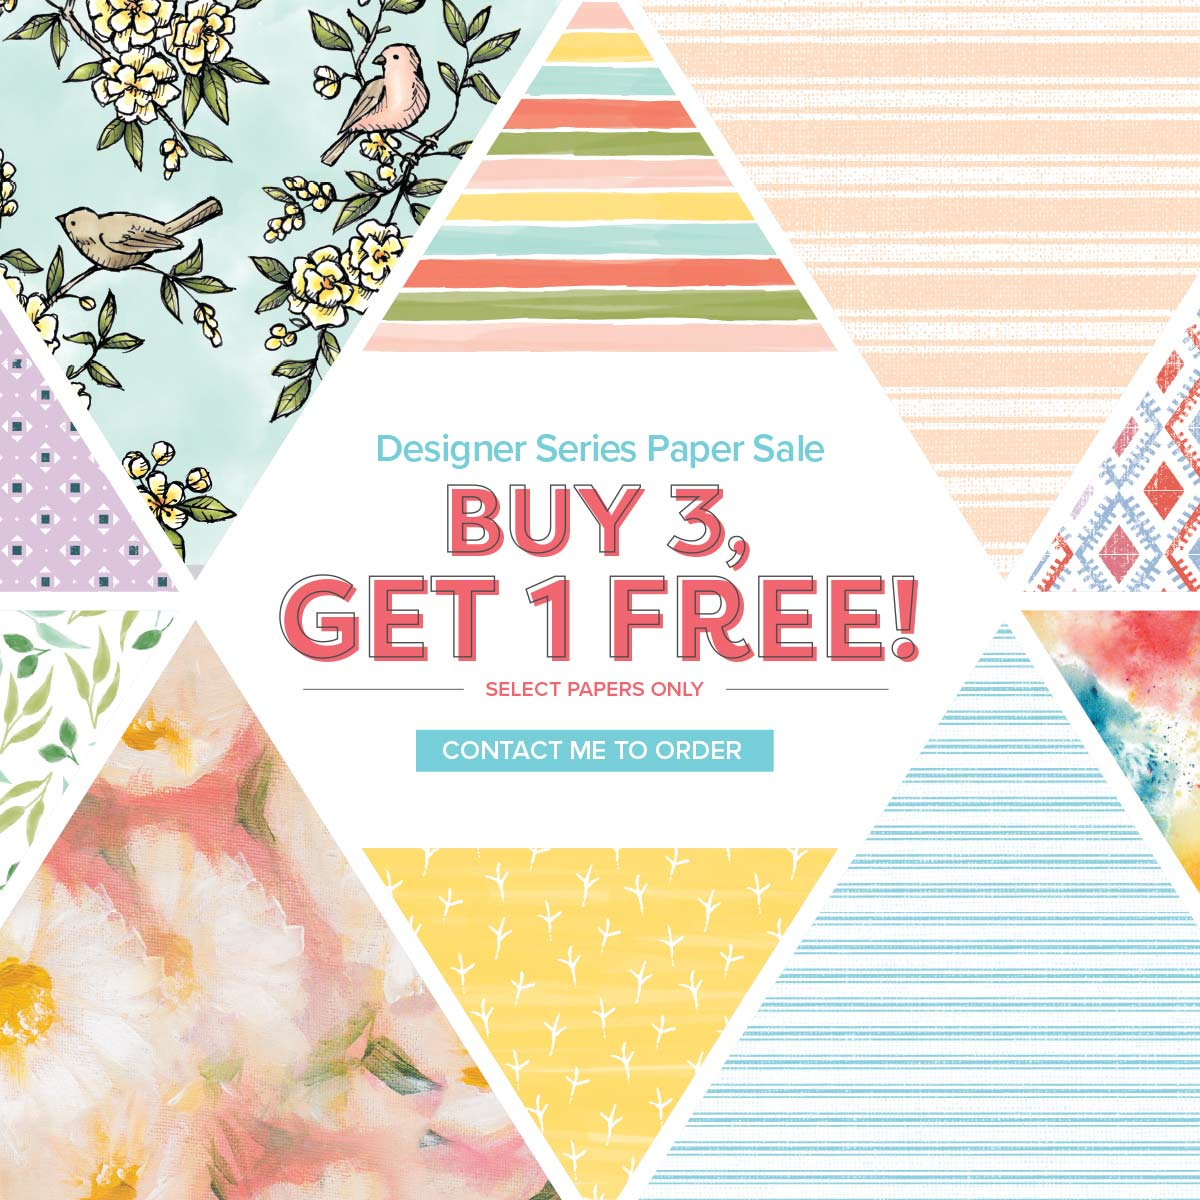 Buy 3 get 1 FREE! on Designer Series Paper